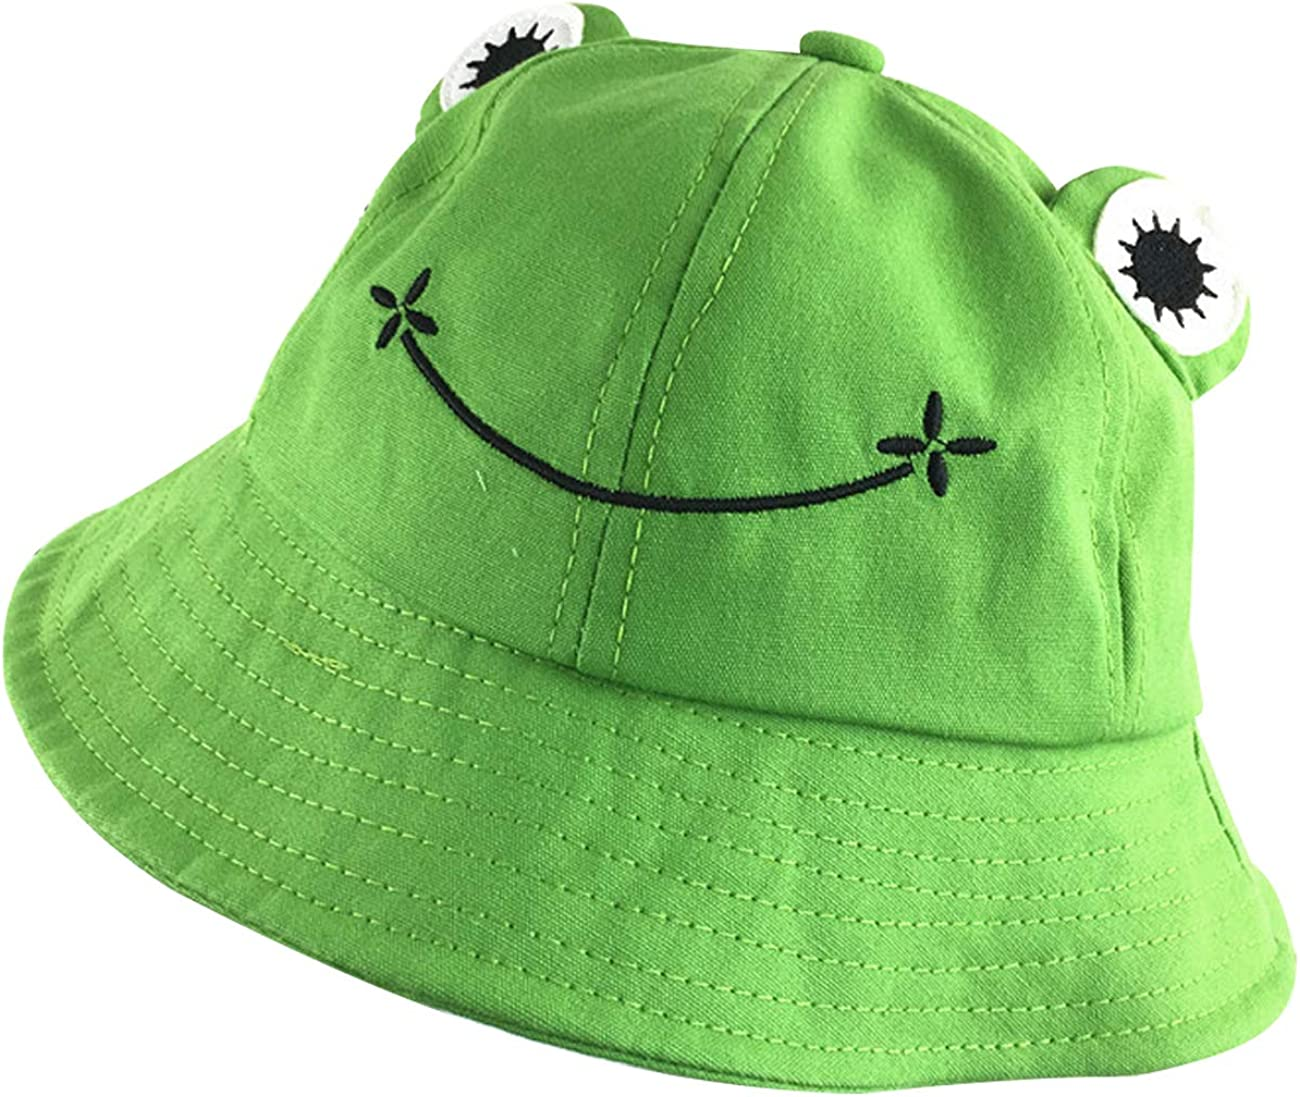 Sheshowbwing San Diego Mall Frog Bucket Hat Genuine Sun Wide Summer Cotton Packable